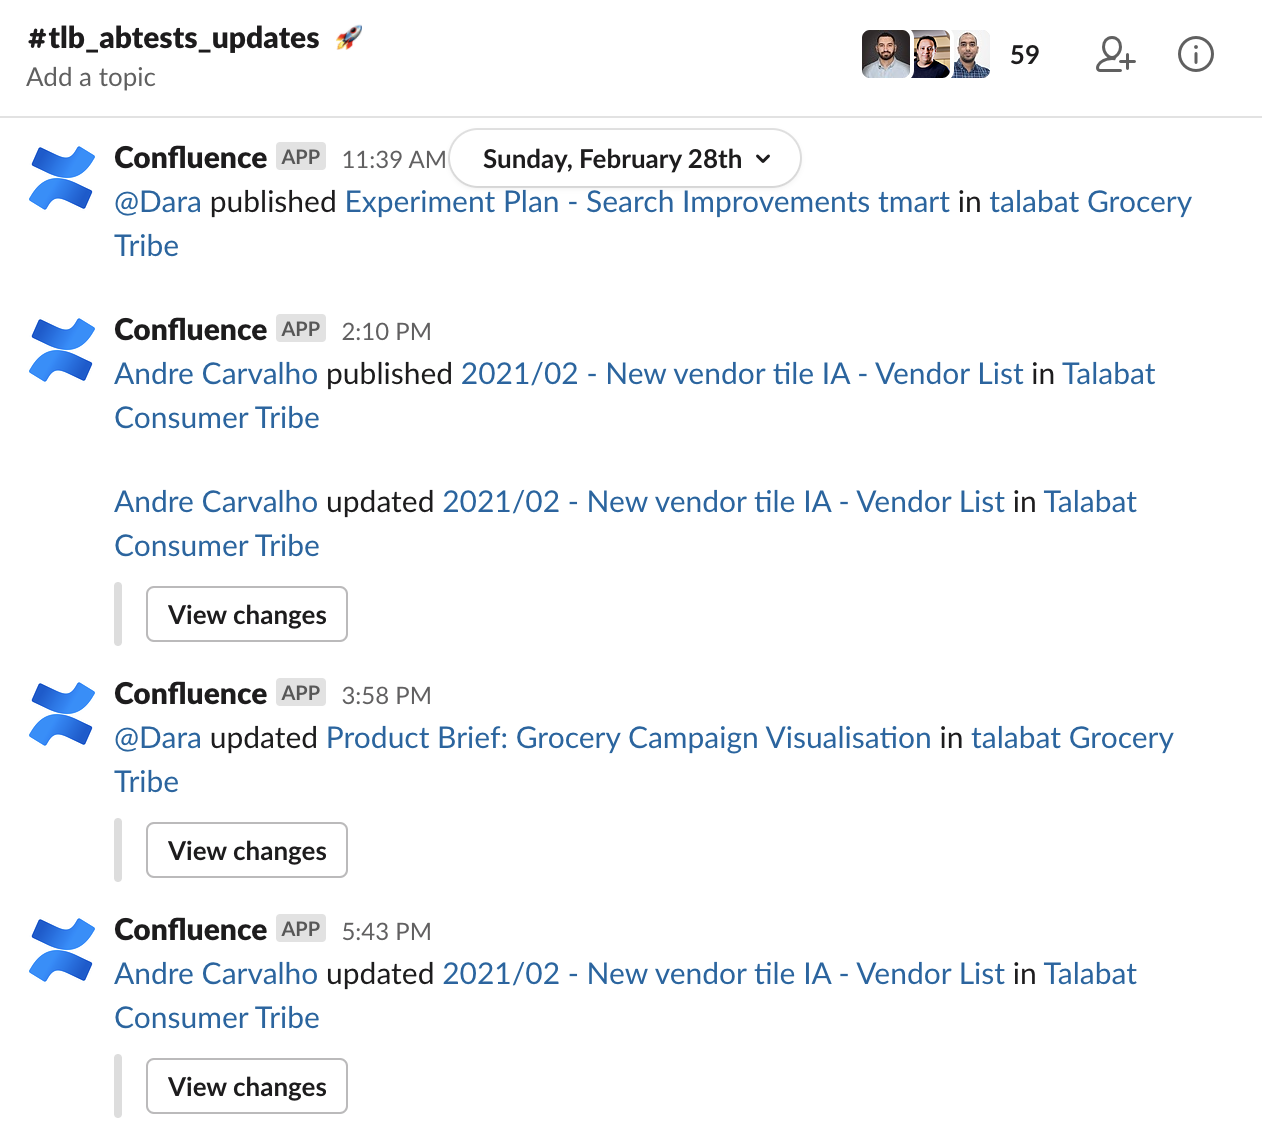 Our Confluence integration in Slack updates us on new Product Briefs published